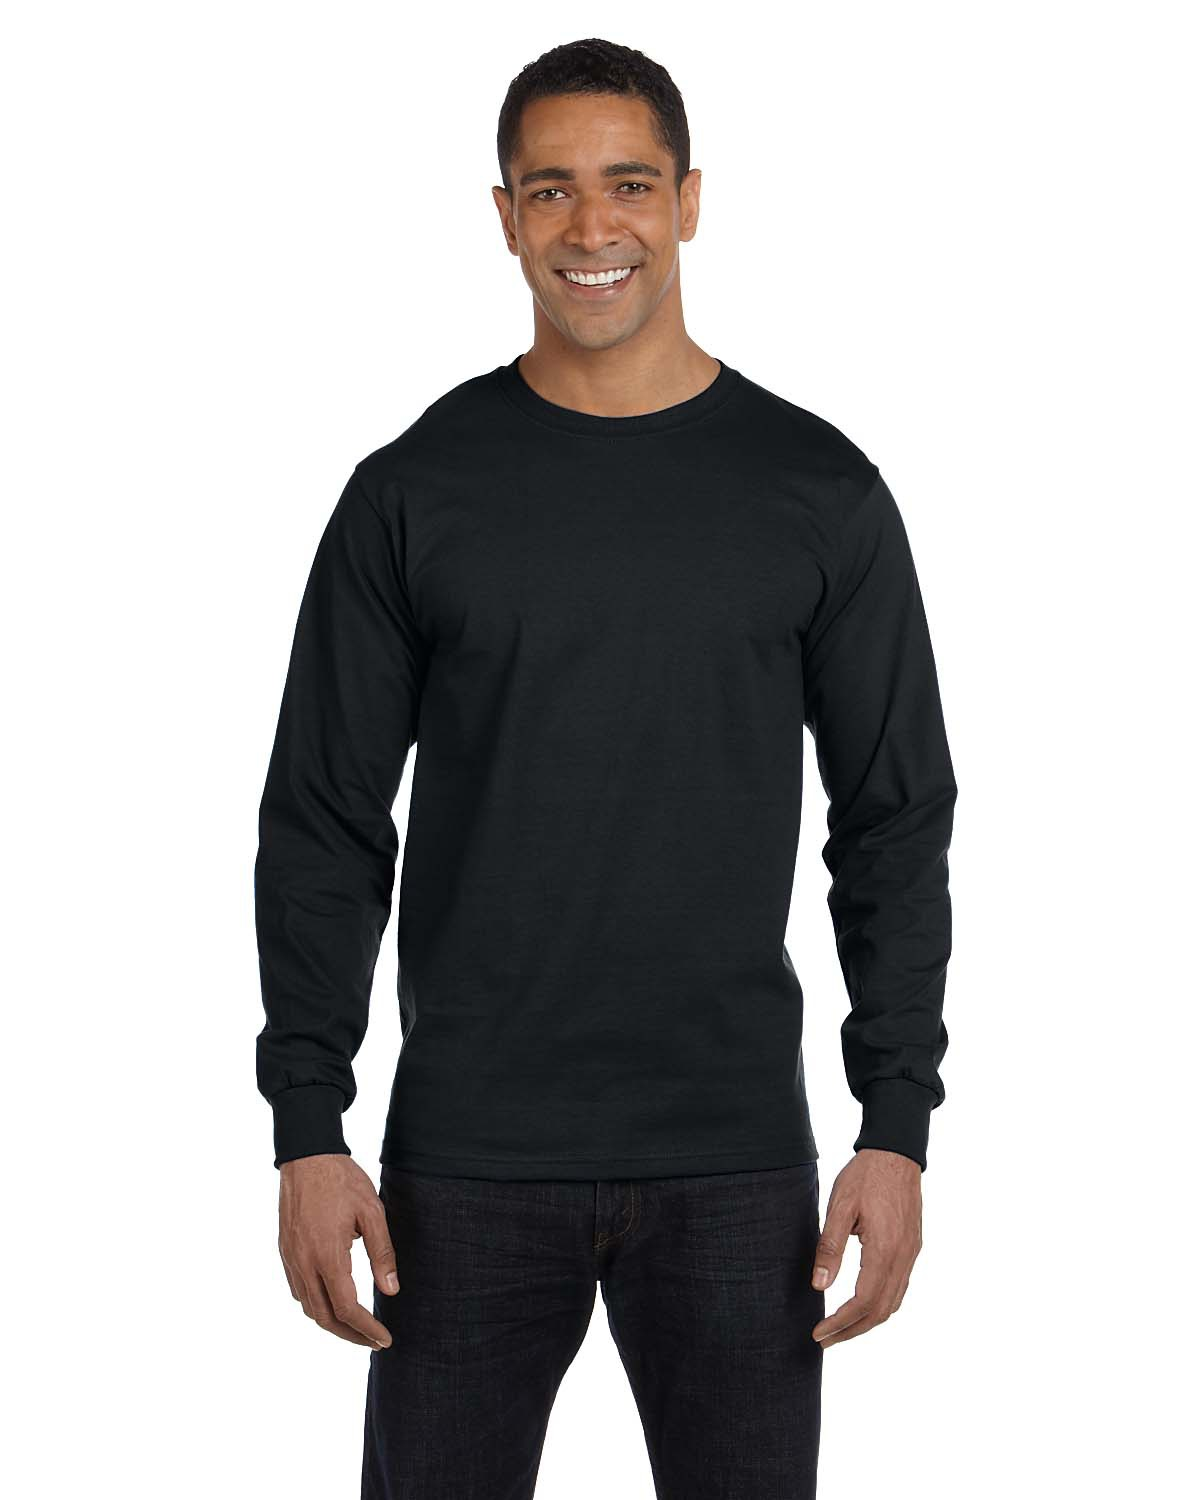 Hanes 5186 - Adult Long-Sleeve Beefy-T